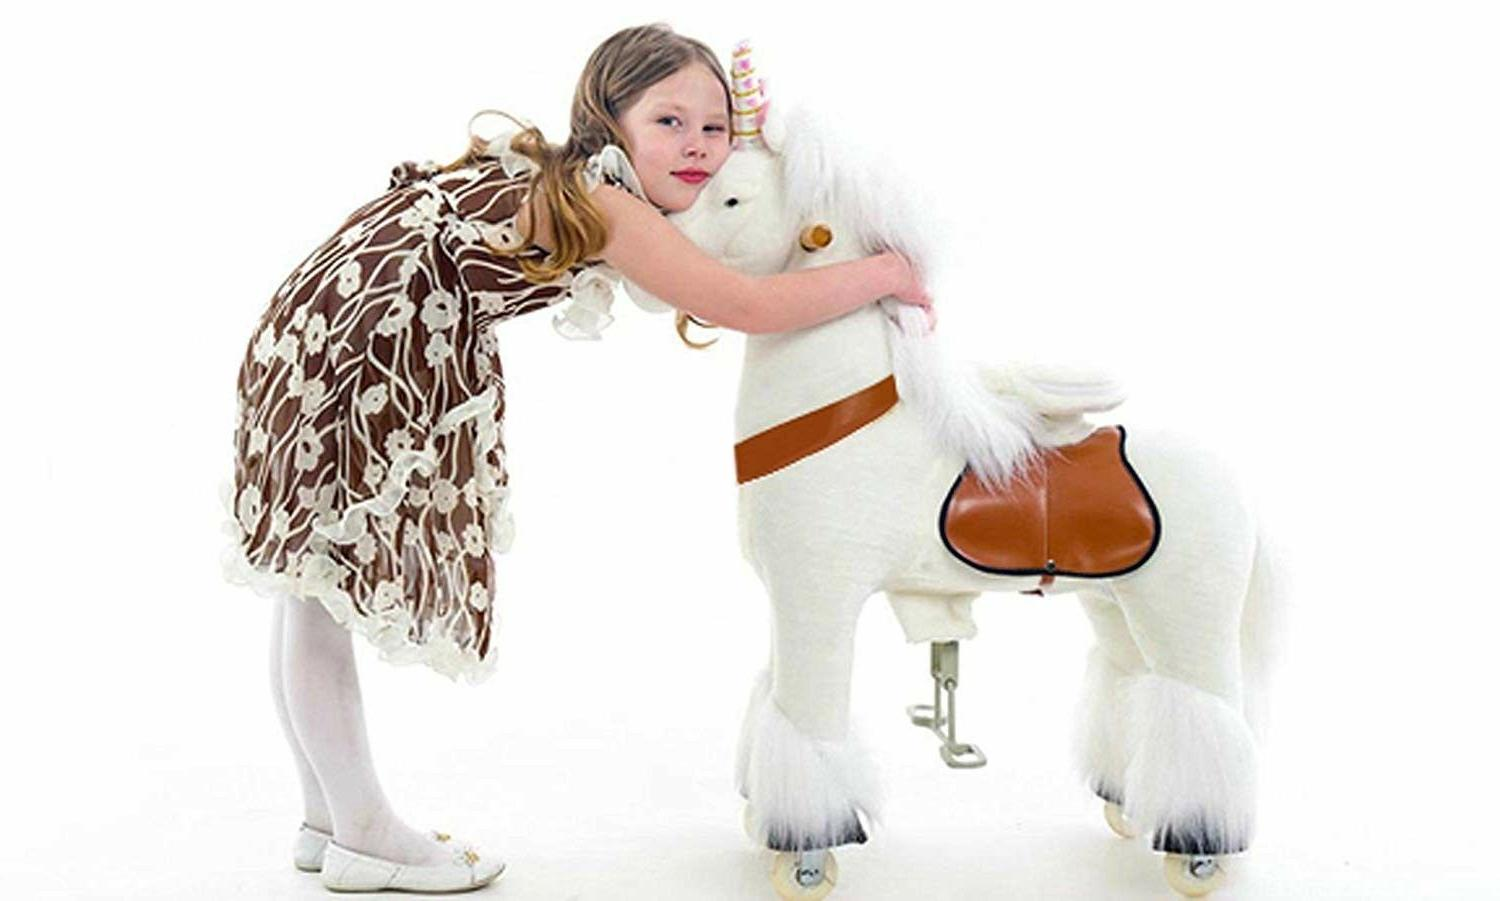 kids riding toy unicorn horse cycle indoor